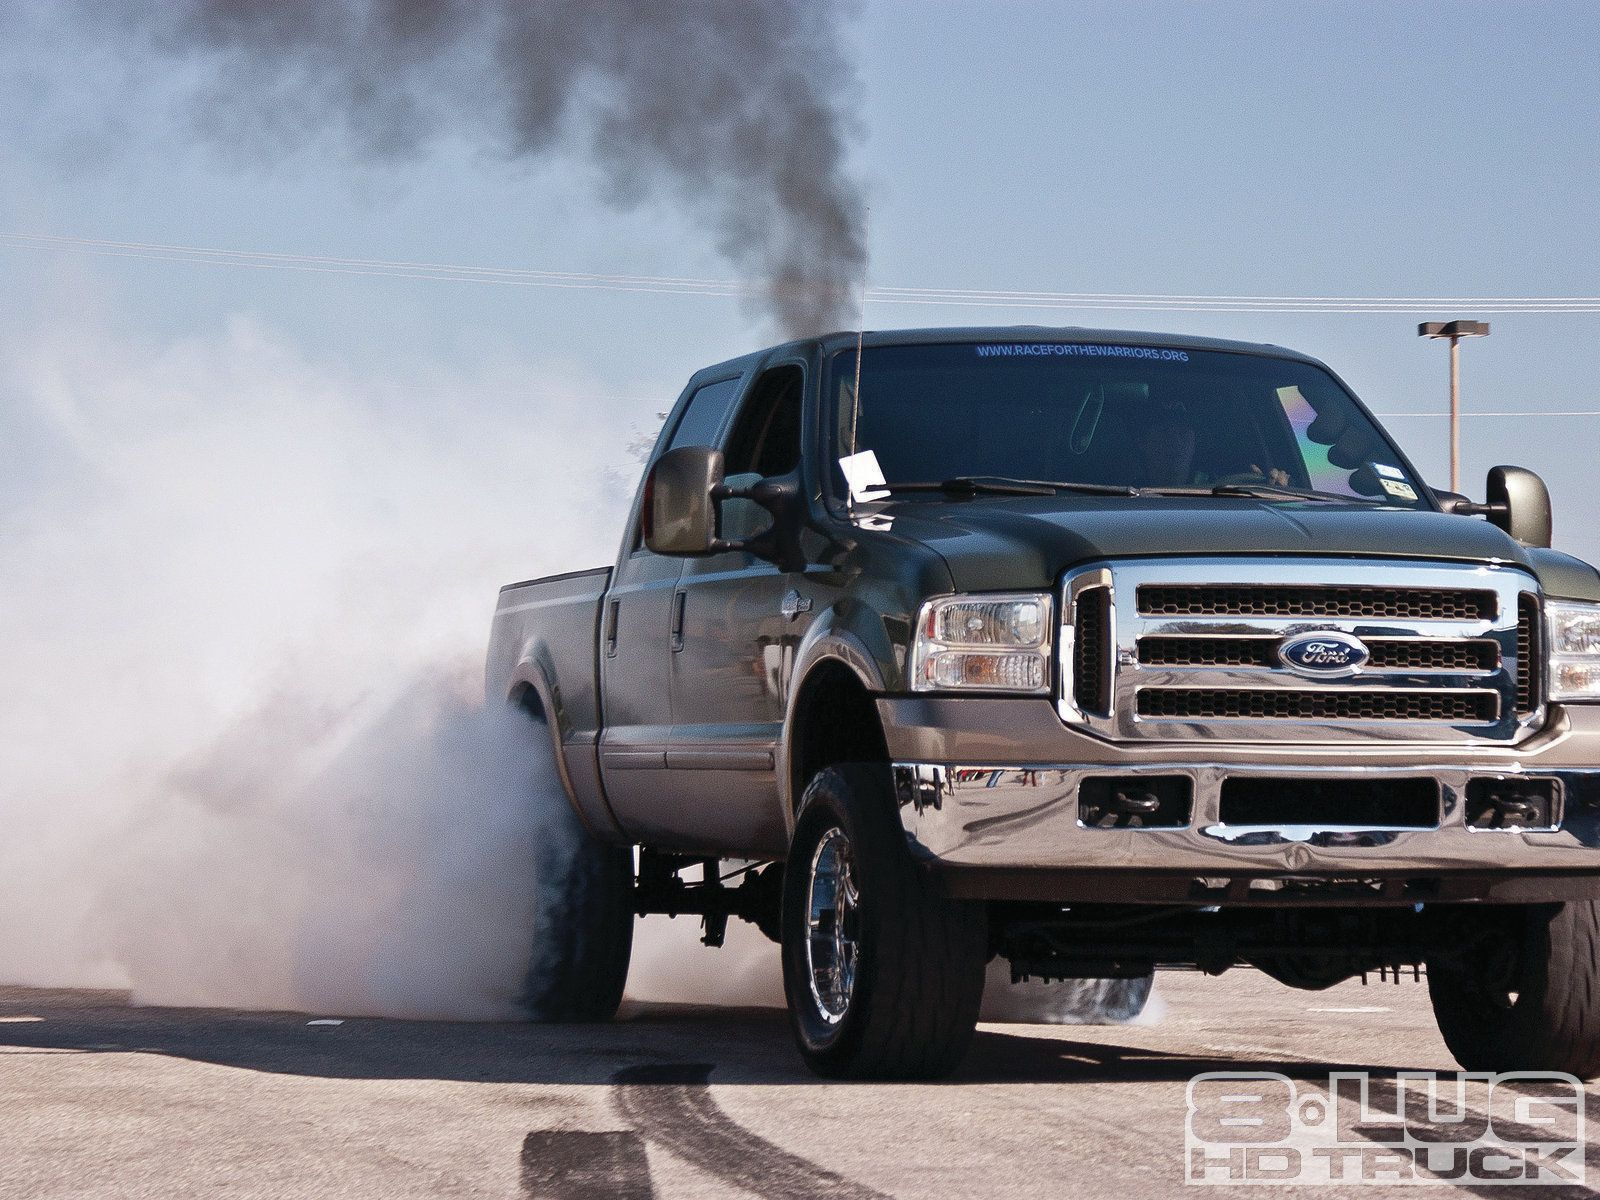 Show scene coverage from the 2011 annual truck source diesel truck show from lifted ford trucks to burnout contests and more in magazine